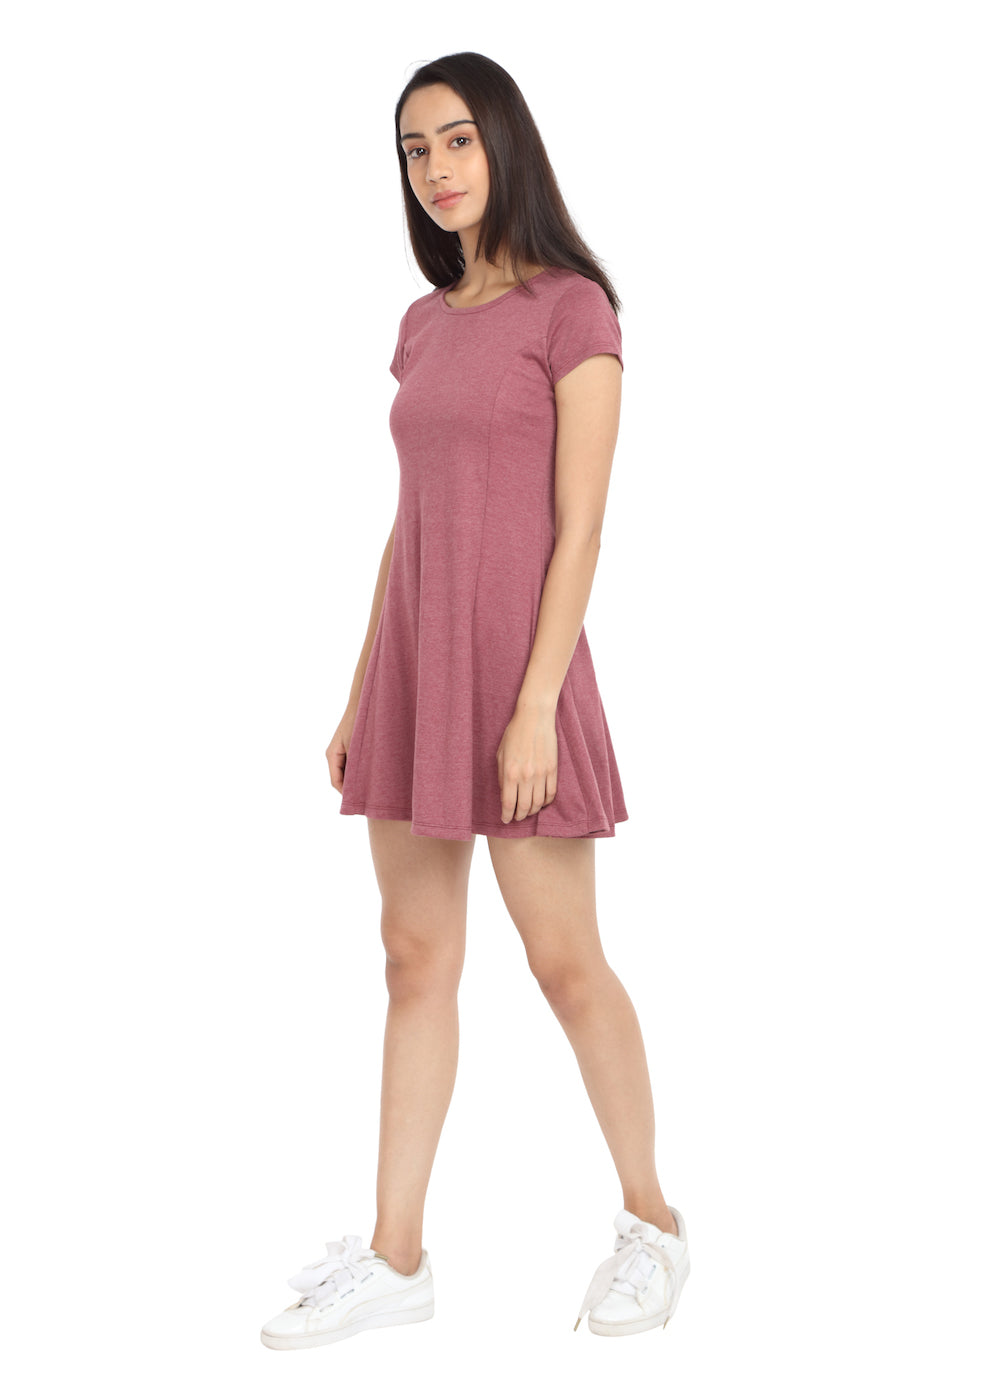 Melange Rose Short Knit Dress - GENZEE